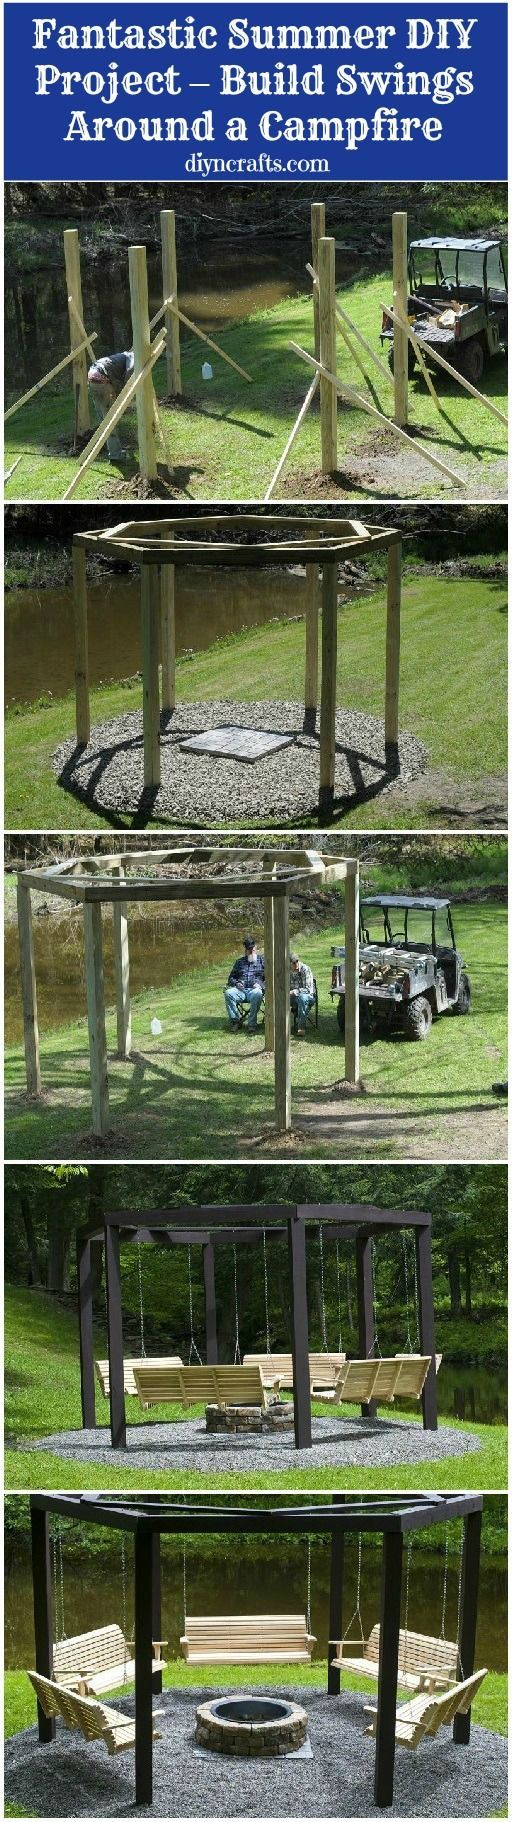 Summer DIY Project – Build Swings Around a Campfire